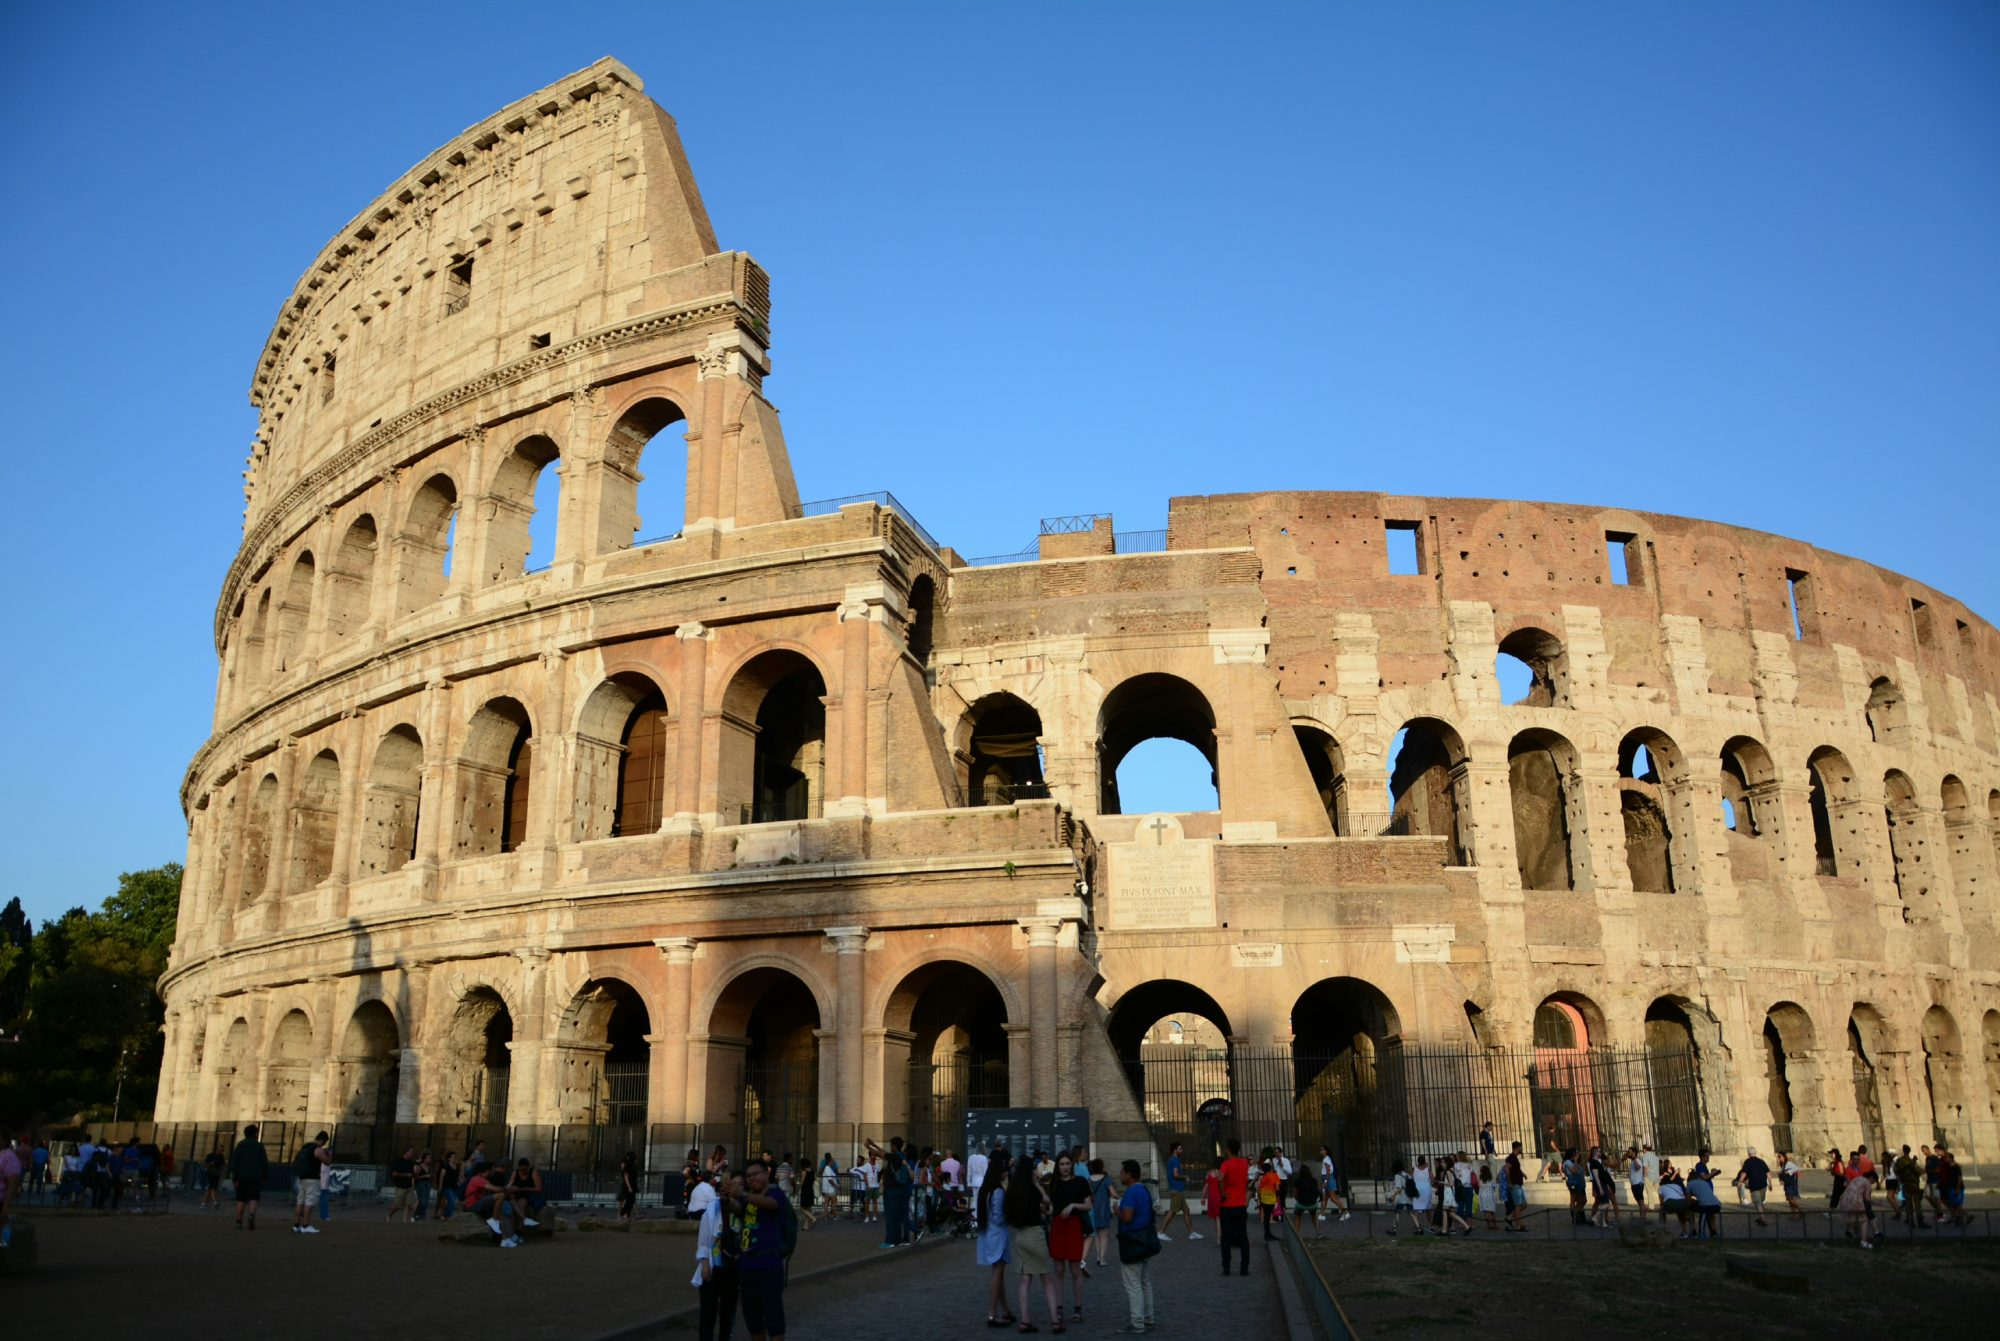 Colosseum in Rome, ancient